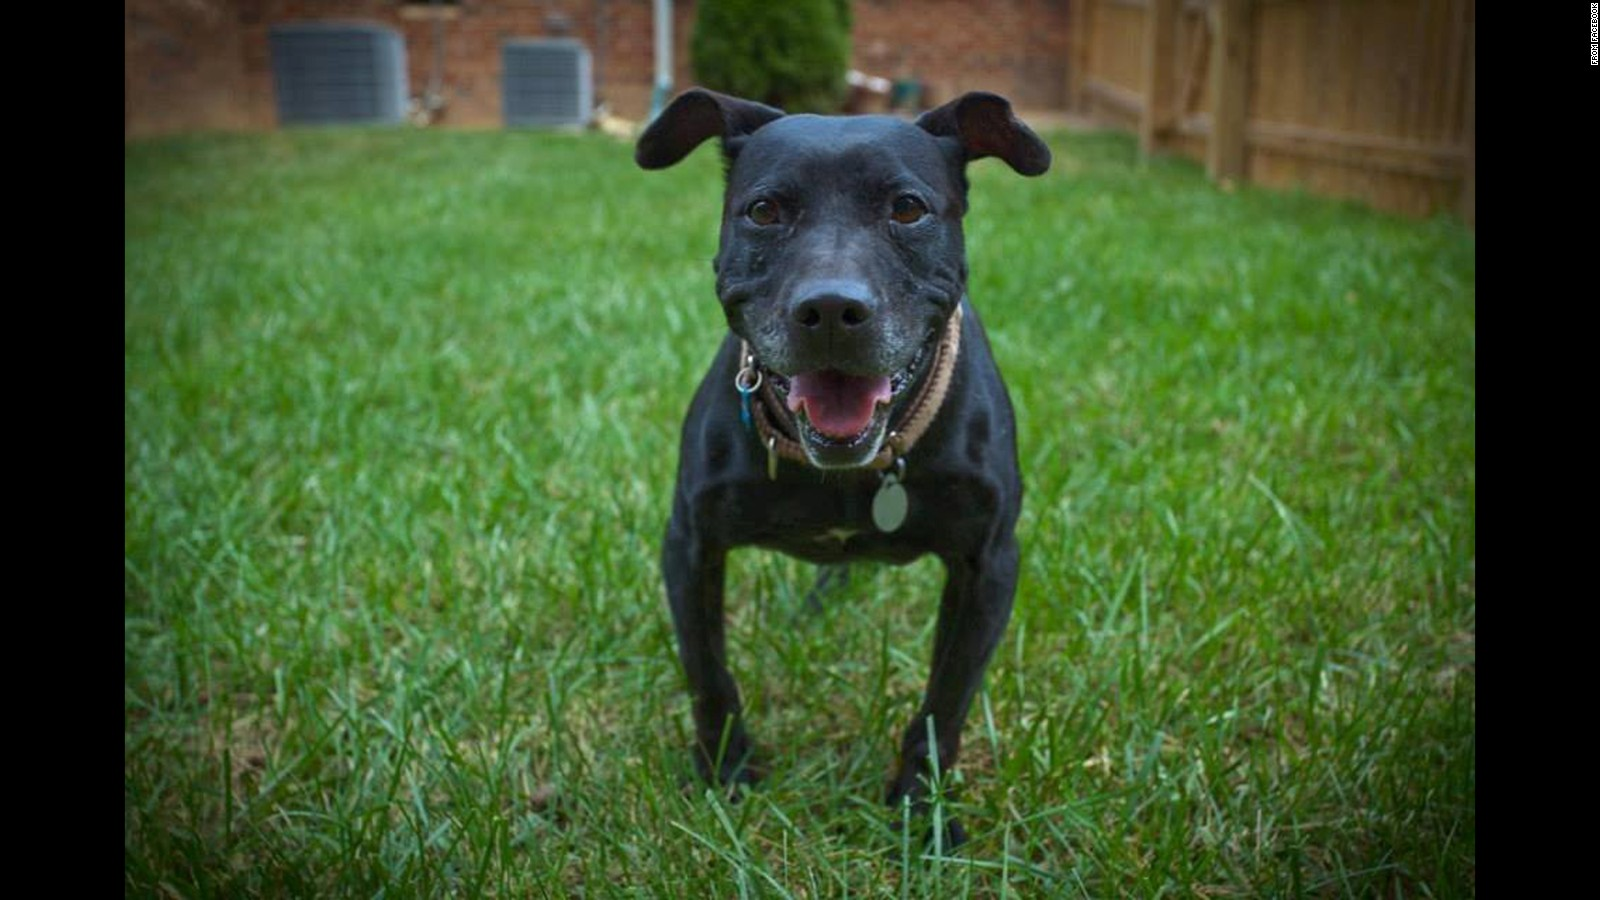 Insurance for Pit Bulls, Find Insurers That Accept